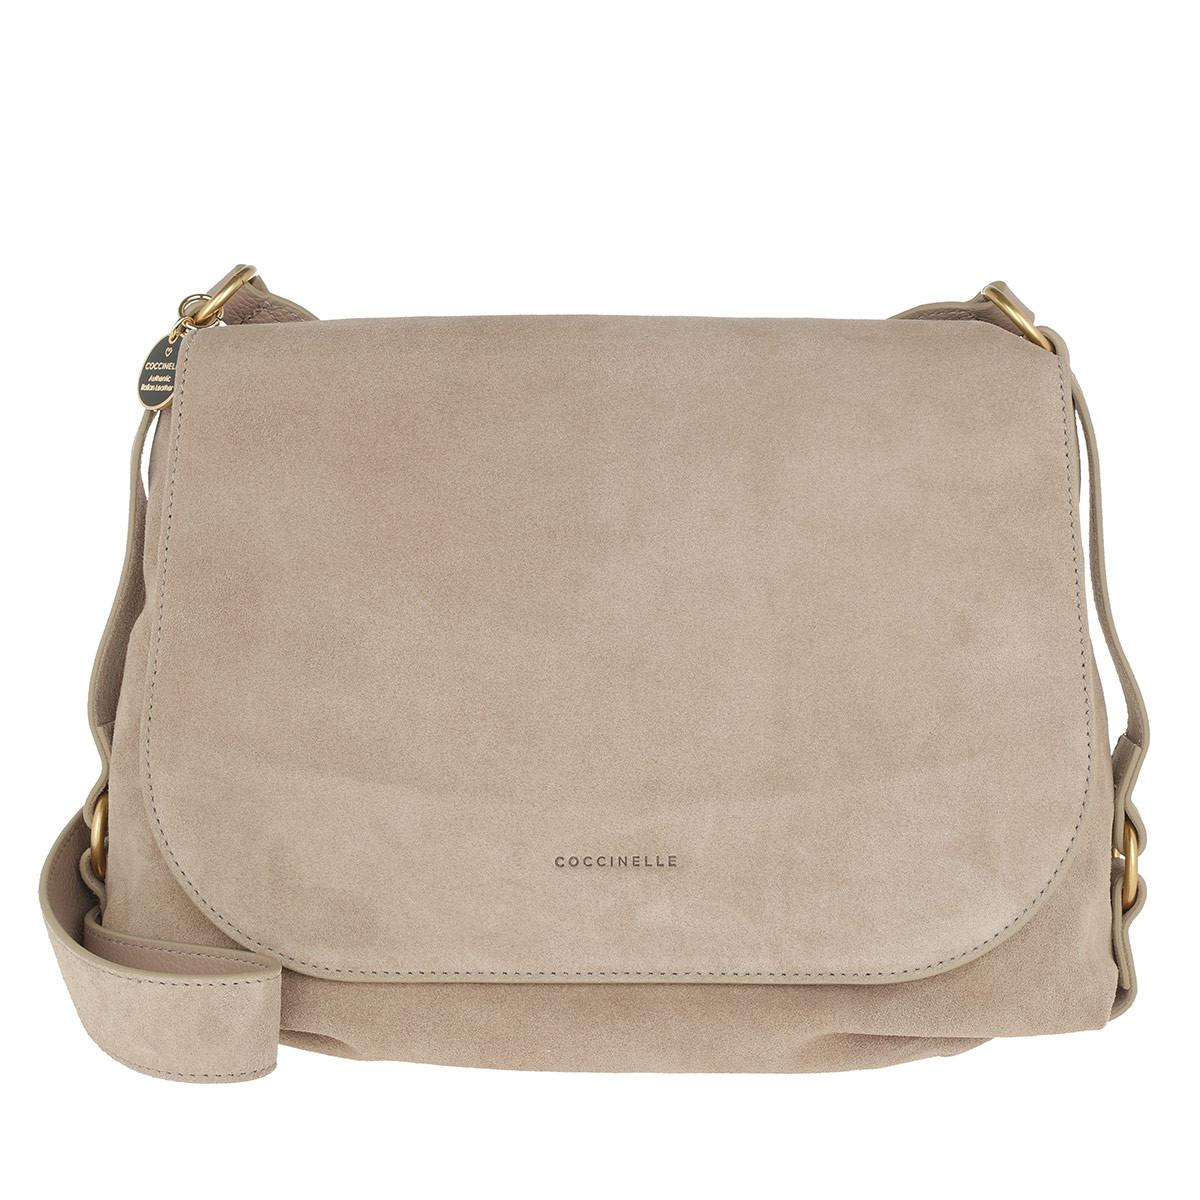 546b87f5aa Coccinelle Alpha Suede Saddle Bag Taupe in Natural - Lyst